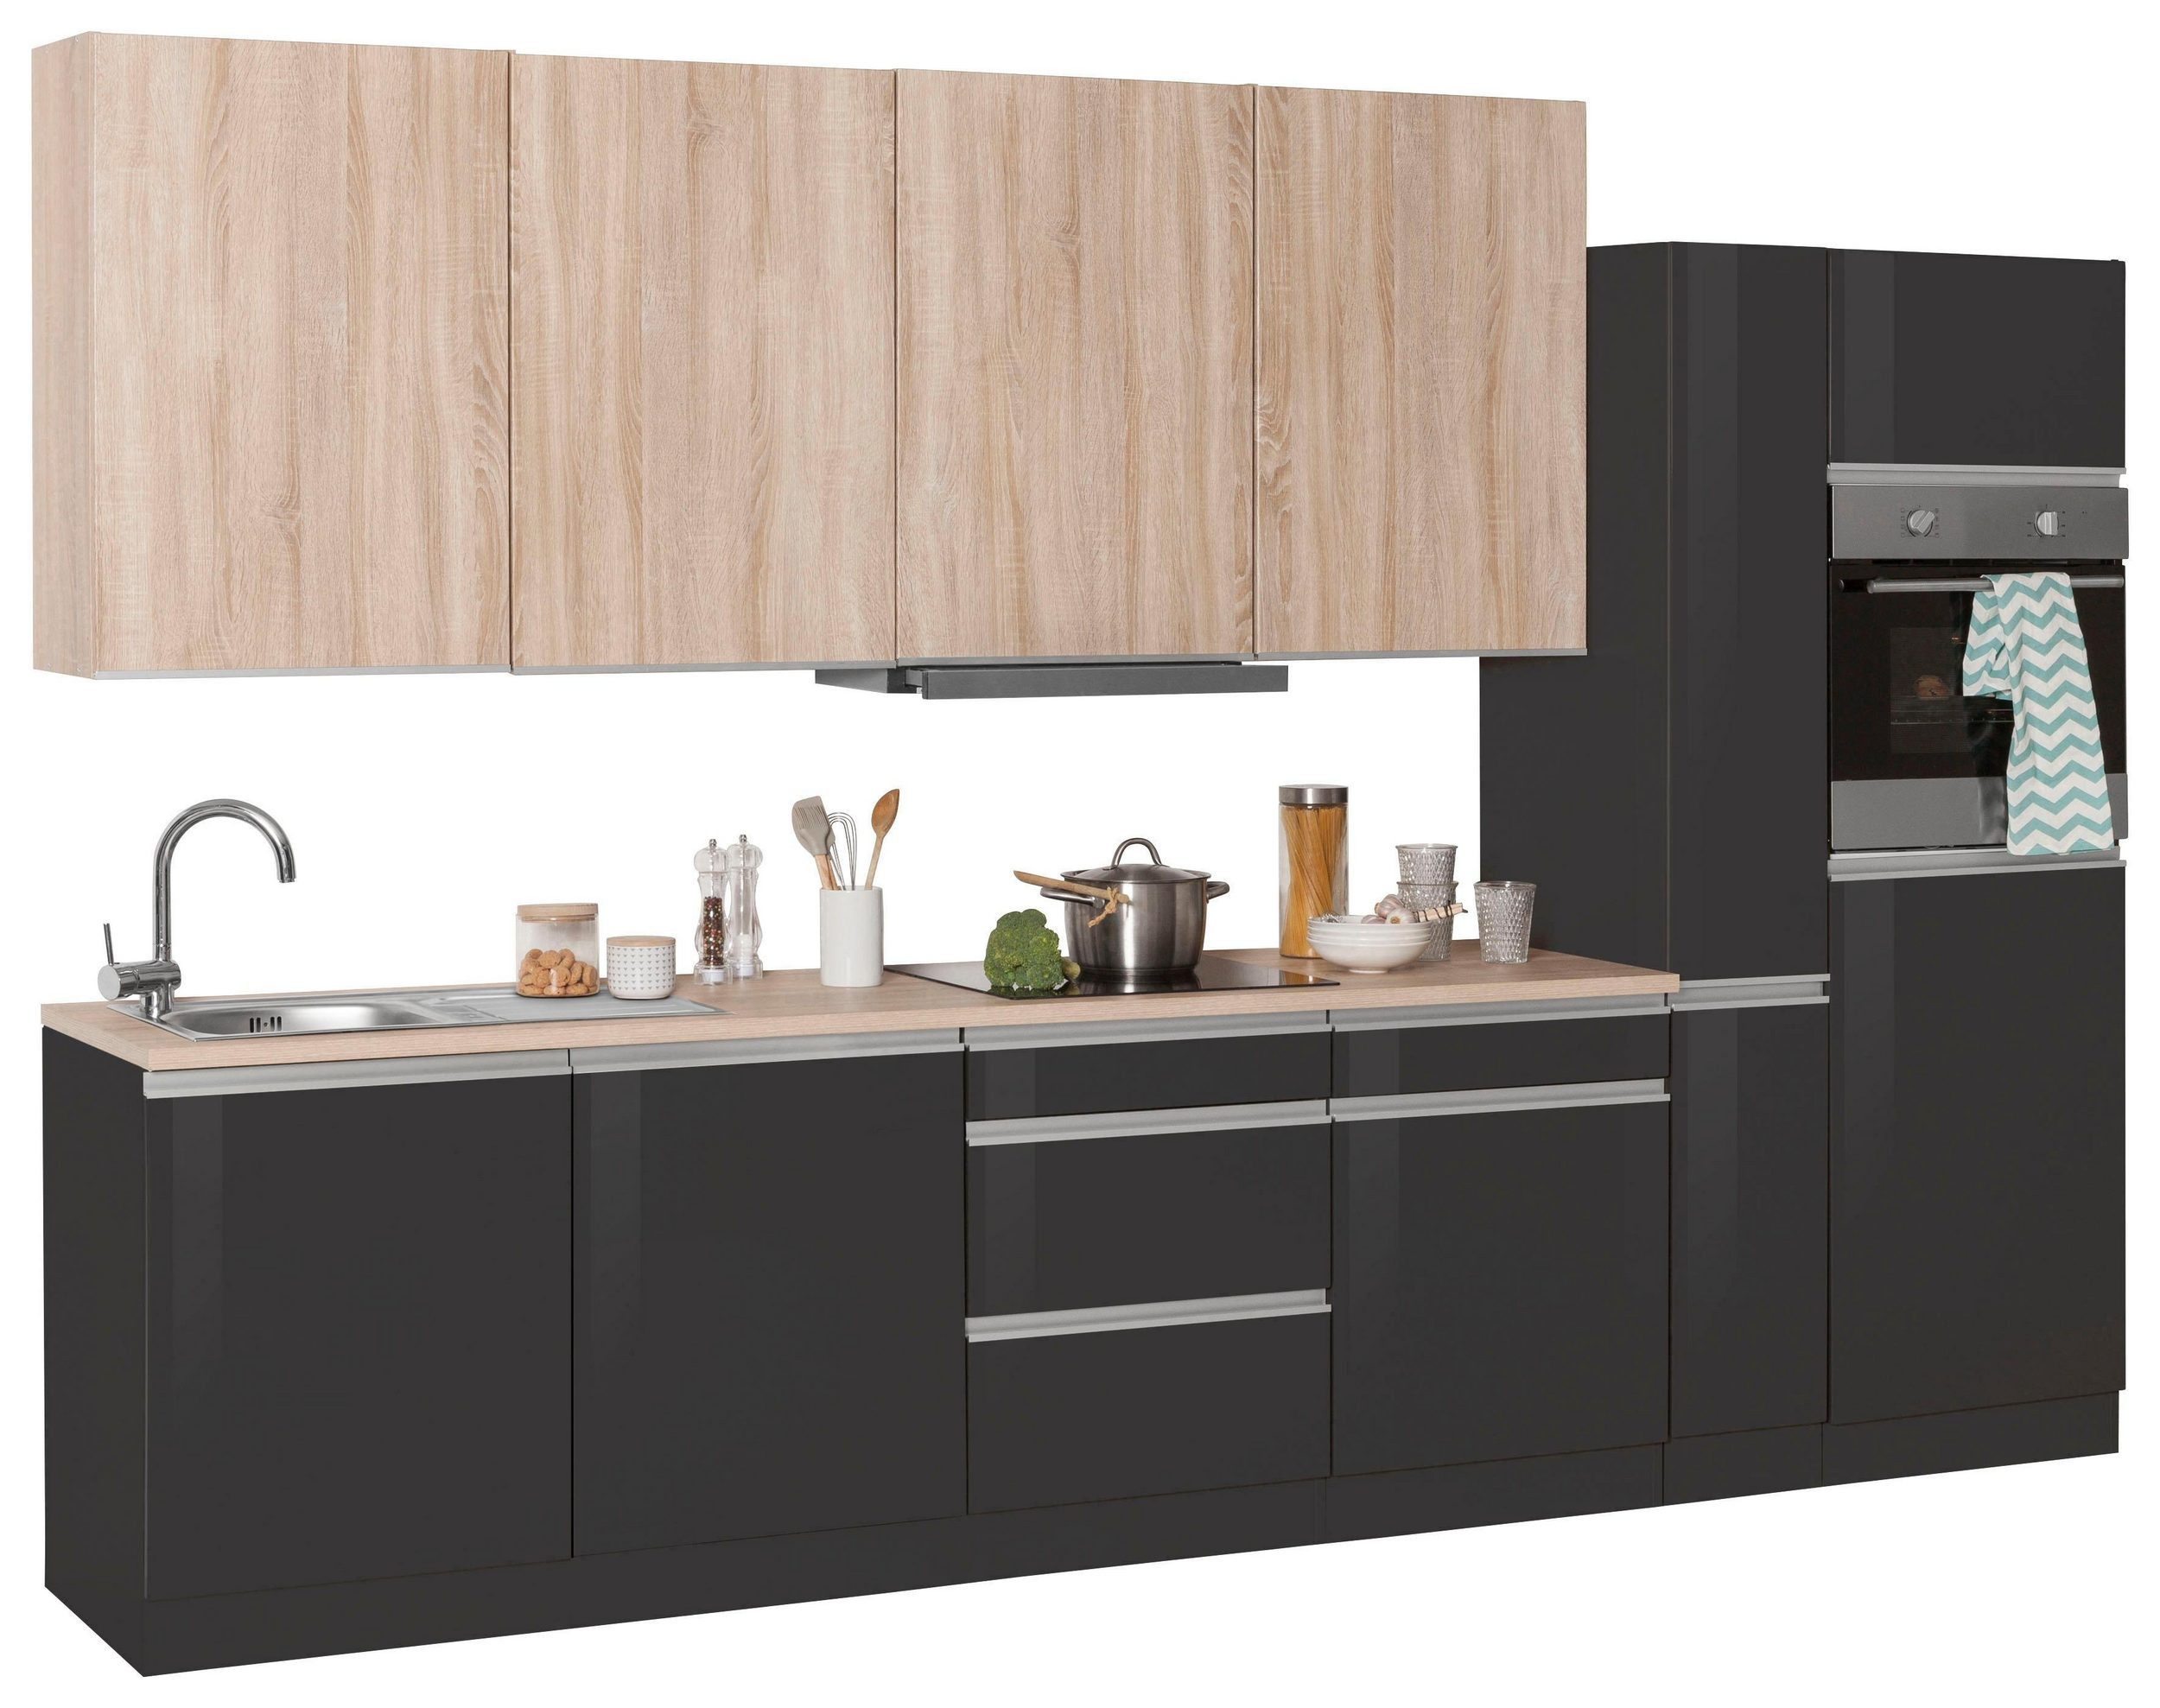 7530786224 Toftan Kitchen Cabinets HELD khmer in phnom penh cambodia